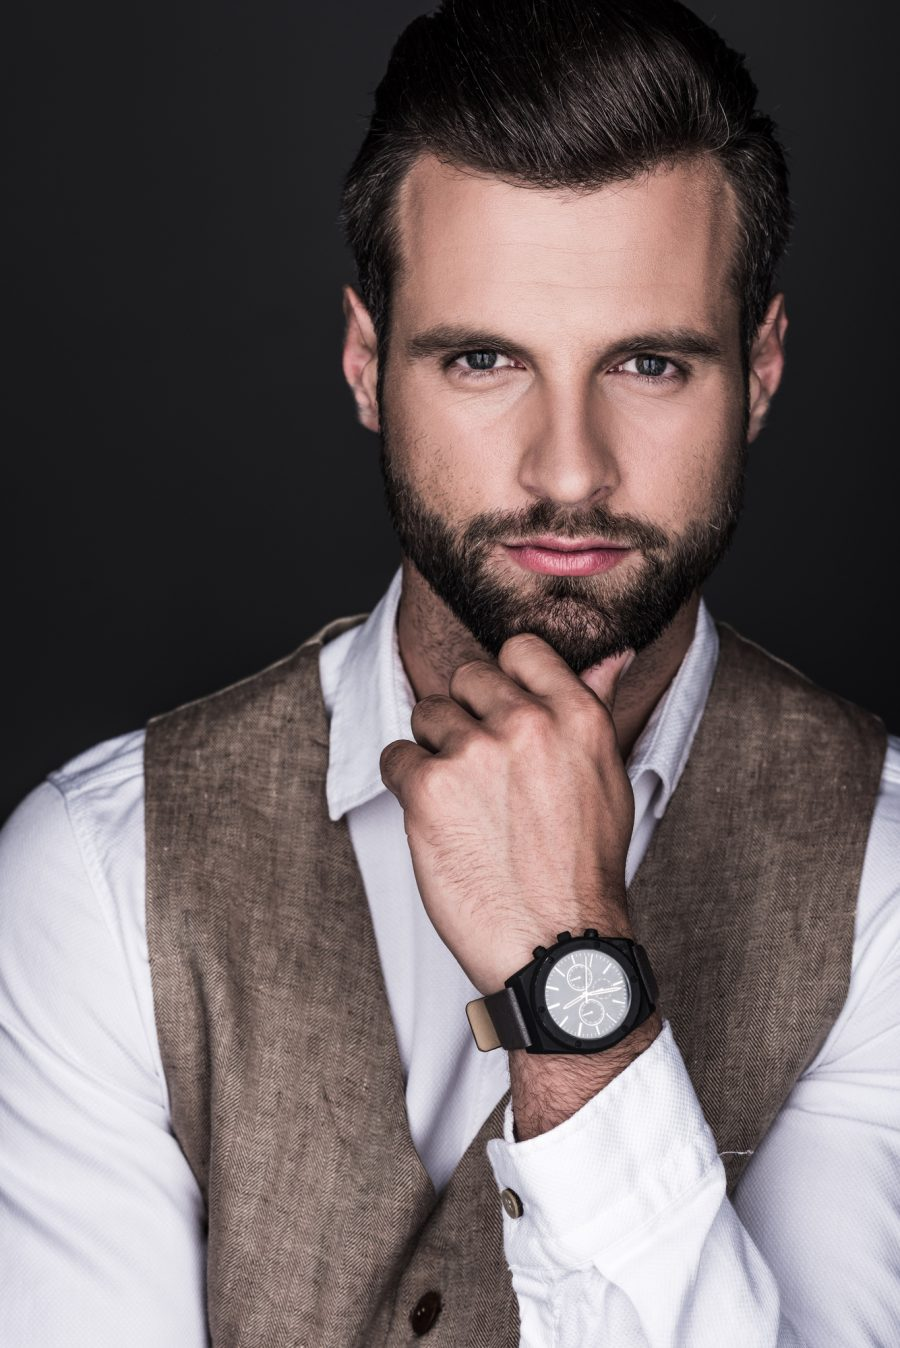 Handsome Male Model Watch